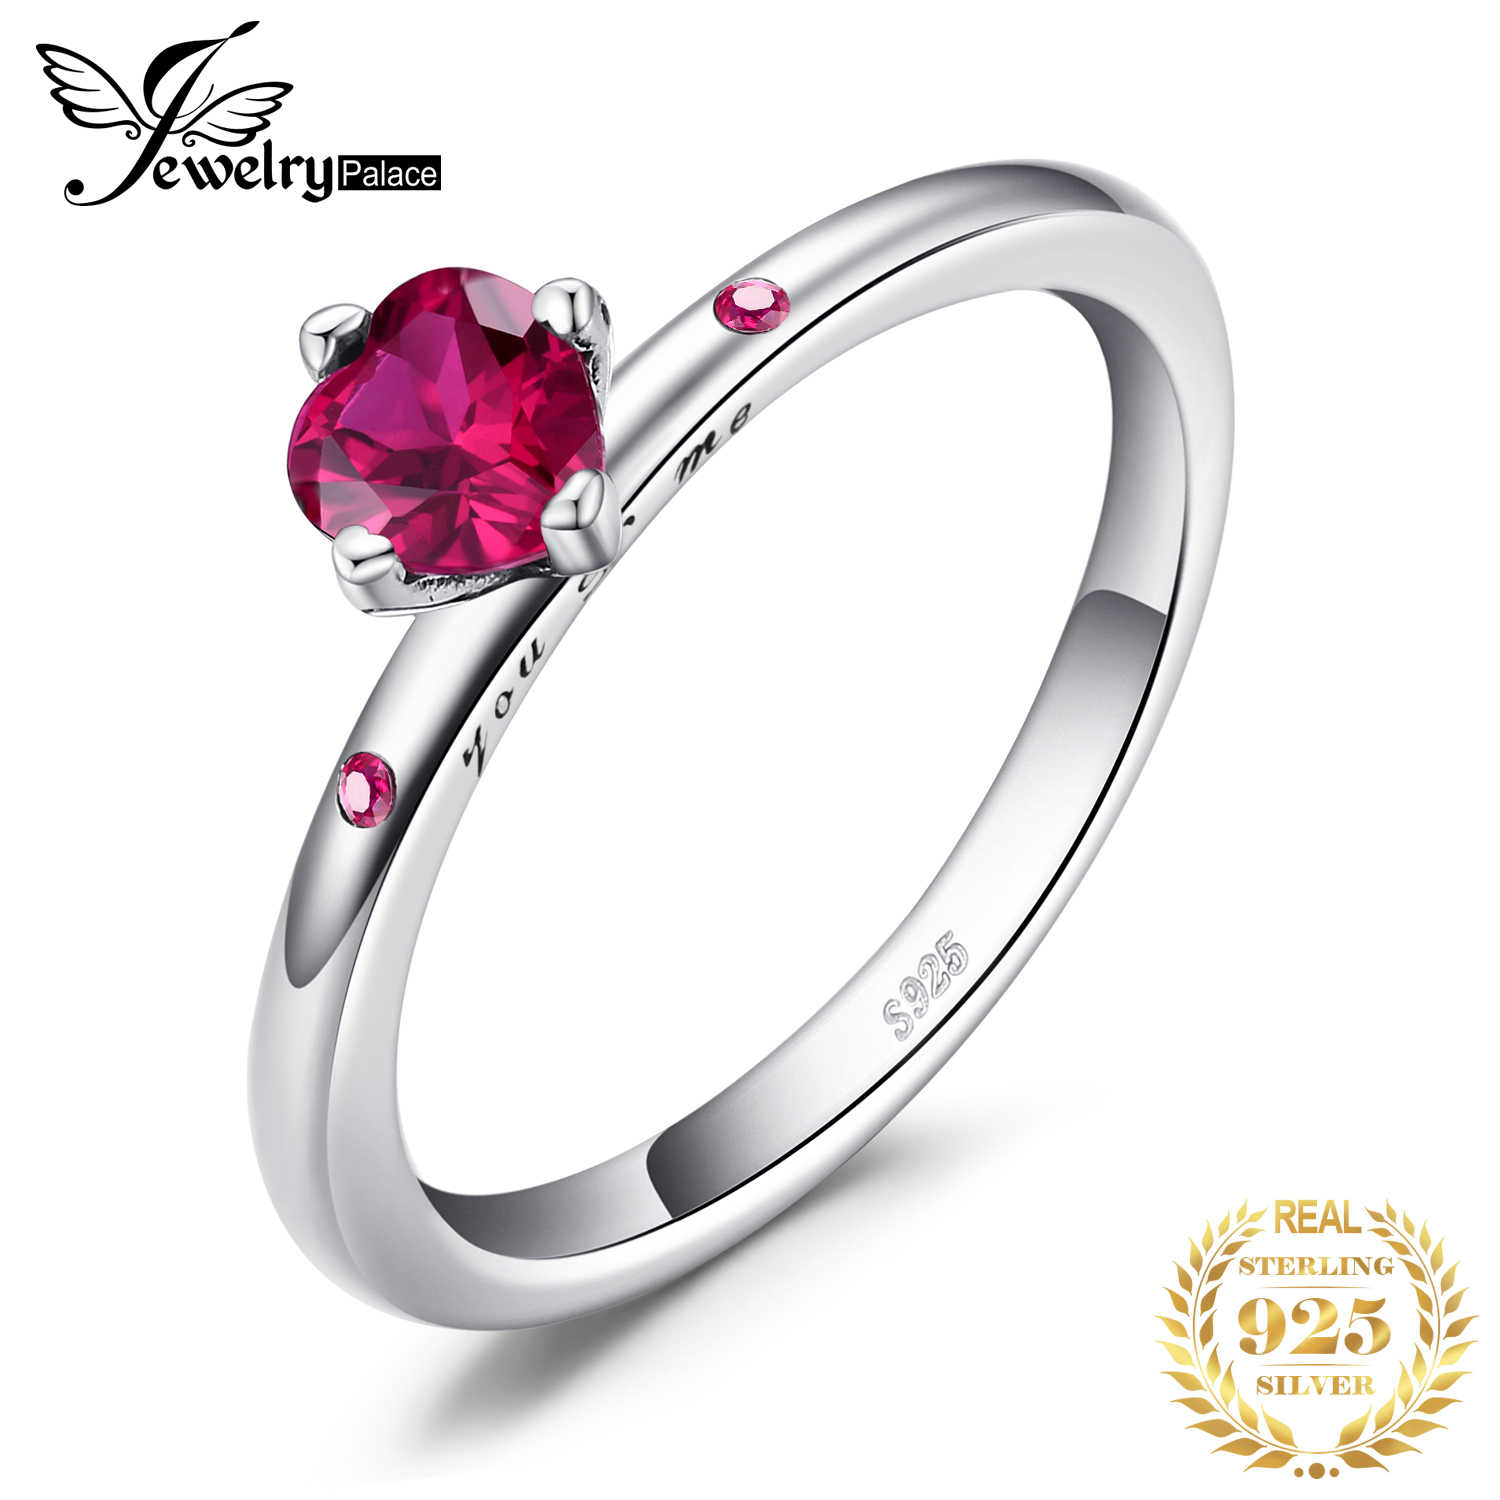 JewelryPalace Red Murano Glass Ring 925 Sterling Silver Rings for Women Stackable Ring Band Silver 925 Jewelry Fine Jewelry